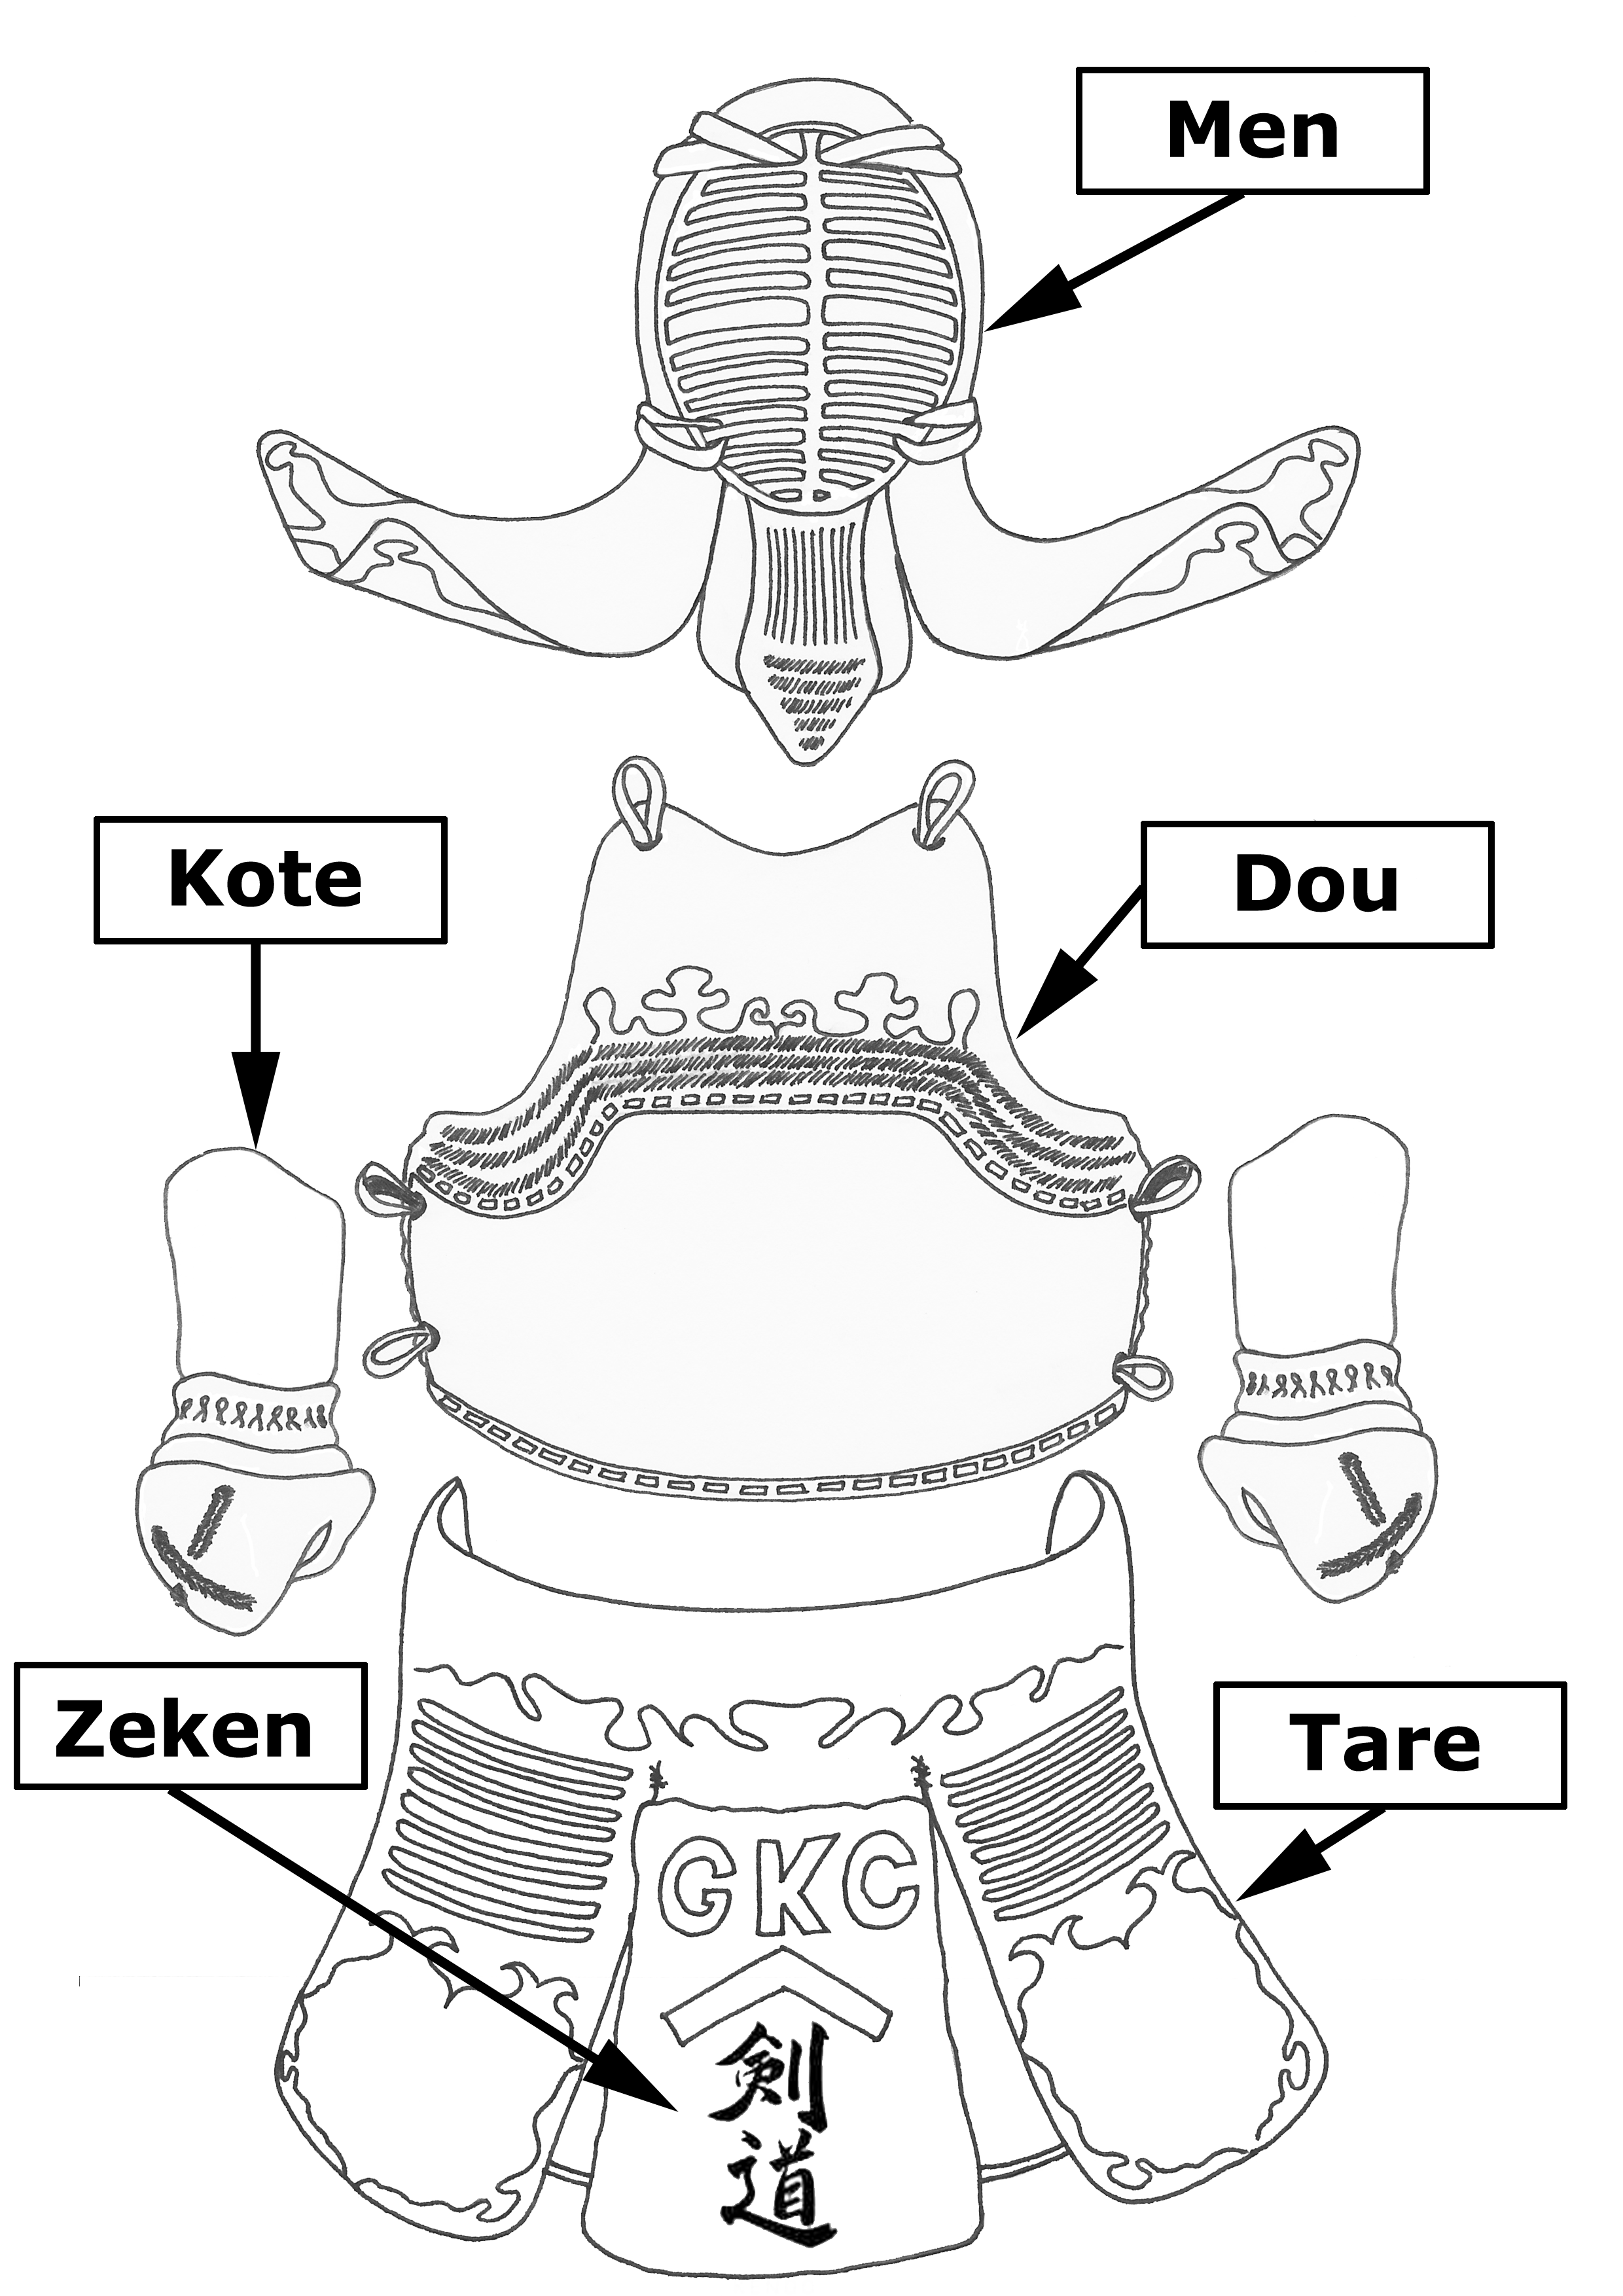 Knight Armor Drawing also Entamoeba Coli Labeled additionally Mustang Wiring Diagrams moreover Truck Blueprints For 3d Modeling moreover Kz or tortoise. on diagram of a knight